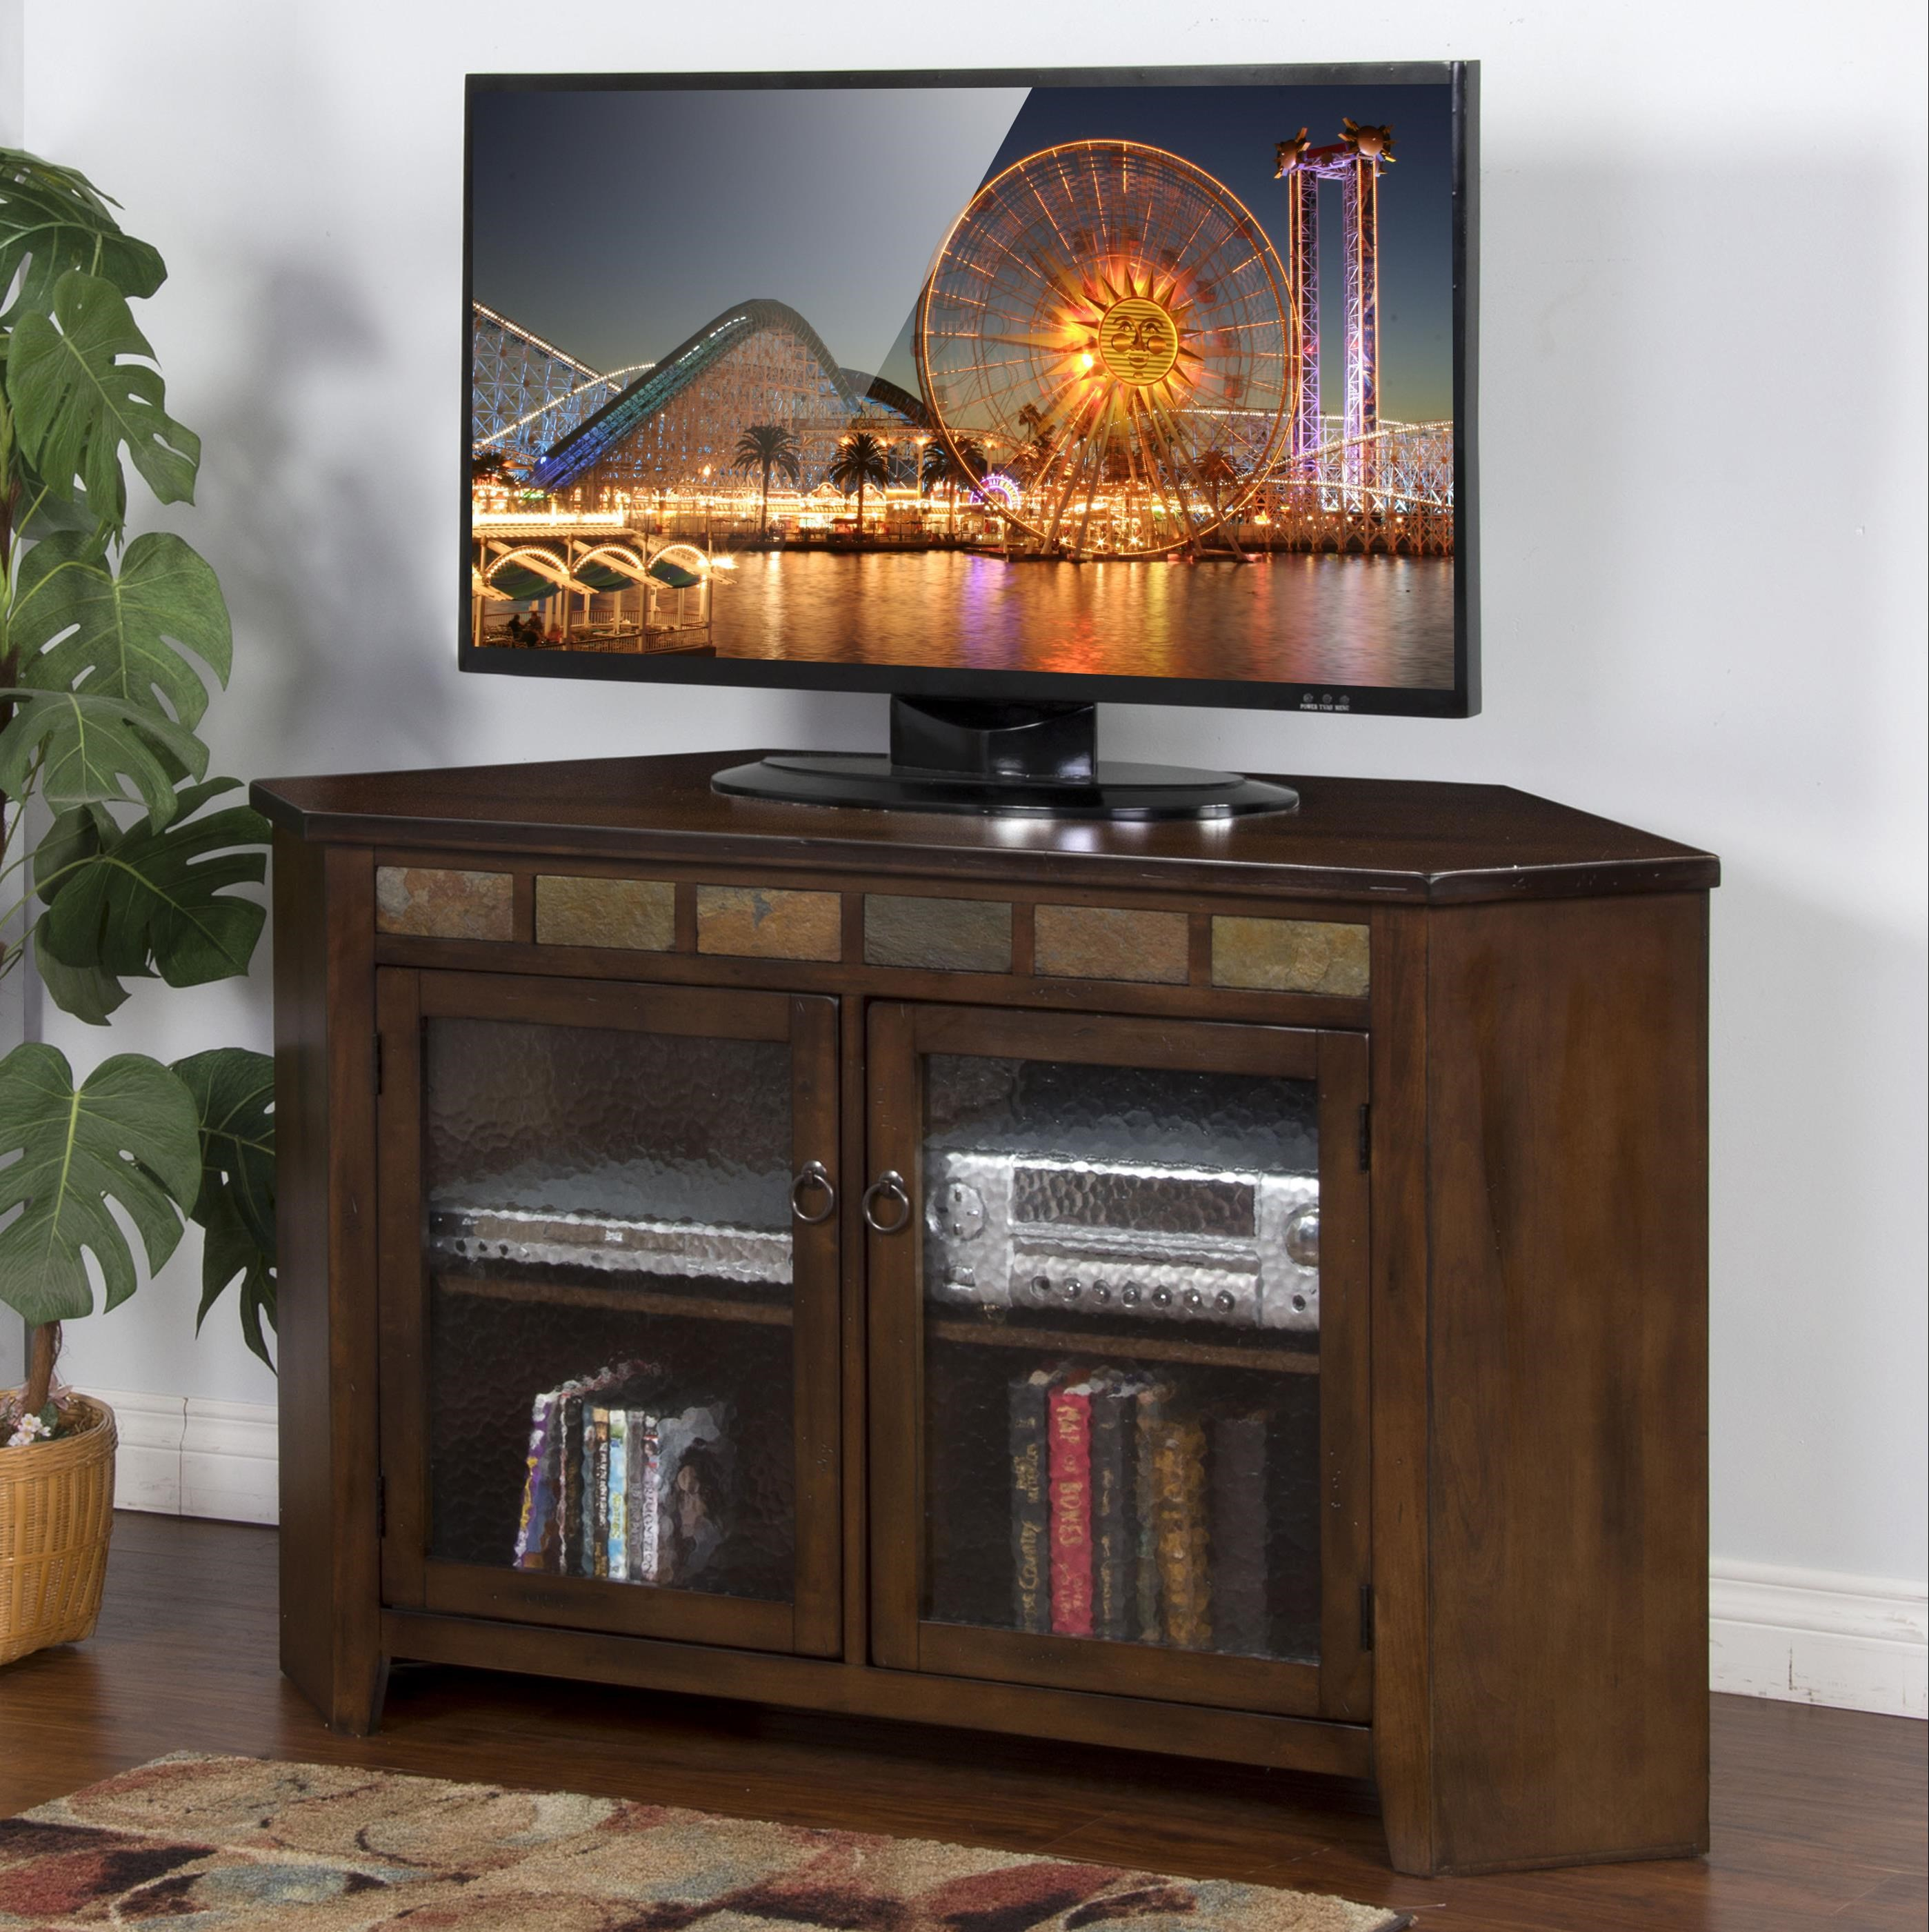 Sunny Designs Santa Fe Traditional 55 Inch Corner TV